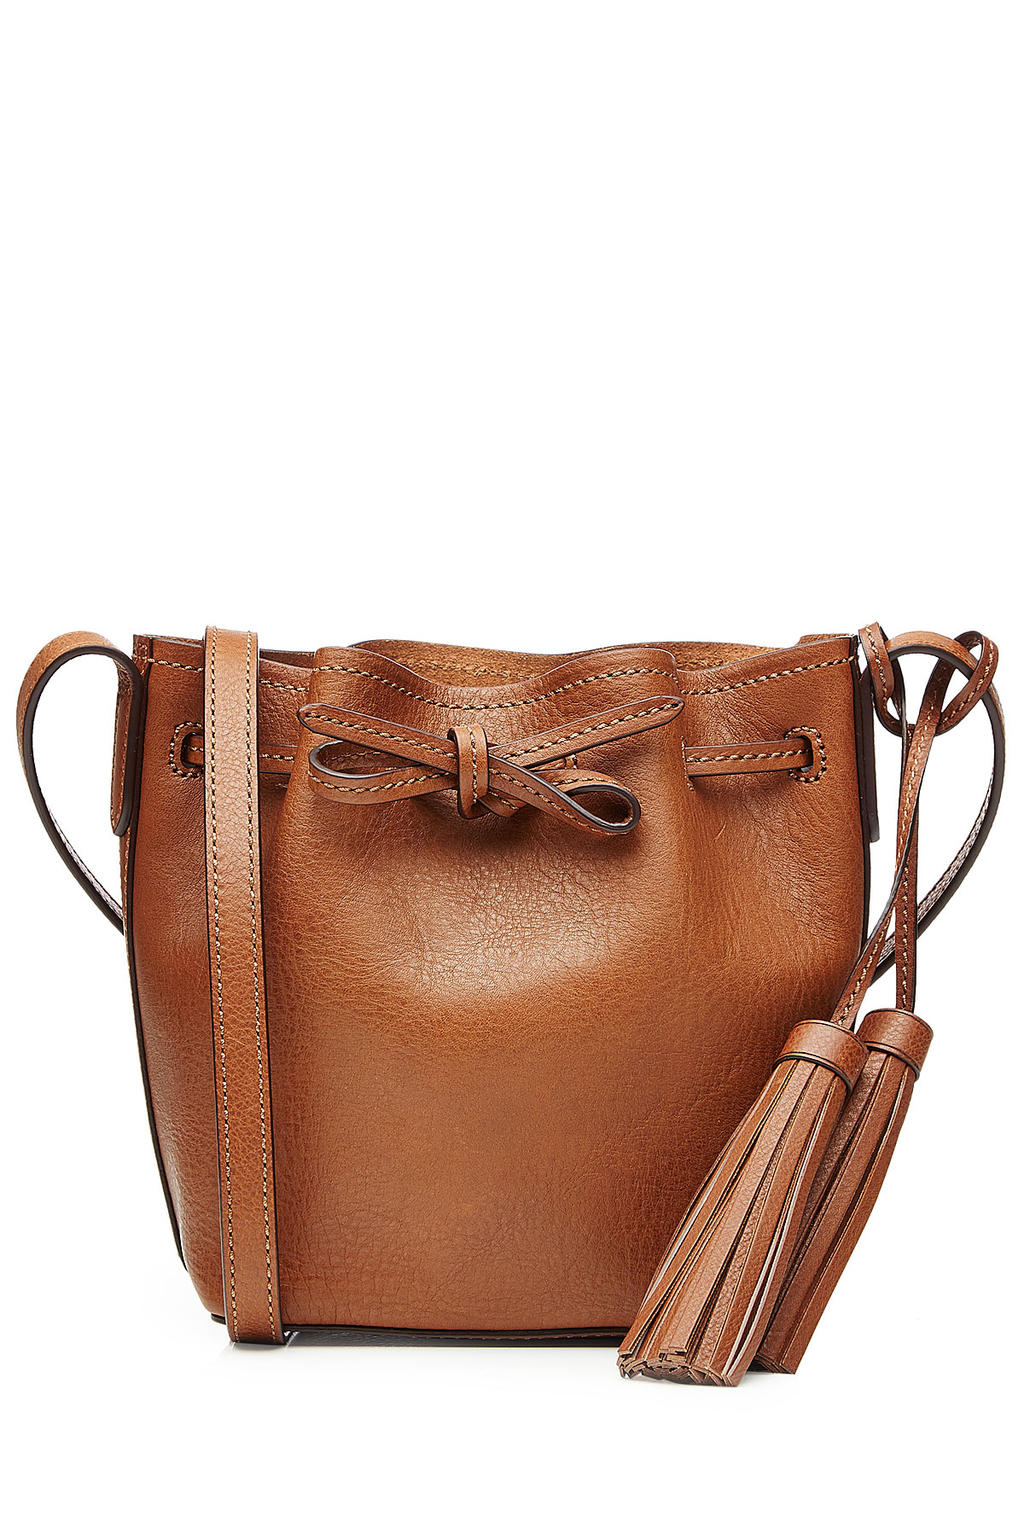 Bucket Shoulder Bag With Tassels Brown - predominant colour: camel; occasions: casual, creative work; type of pattern: standard; style: shoulder; length: shoulder (tucks under arm); size: standard; material: leather; embellishment: tassels; pattern: plain; finish: plain; season: s/s 2016; wardrobe: investment